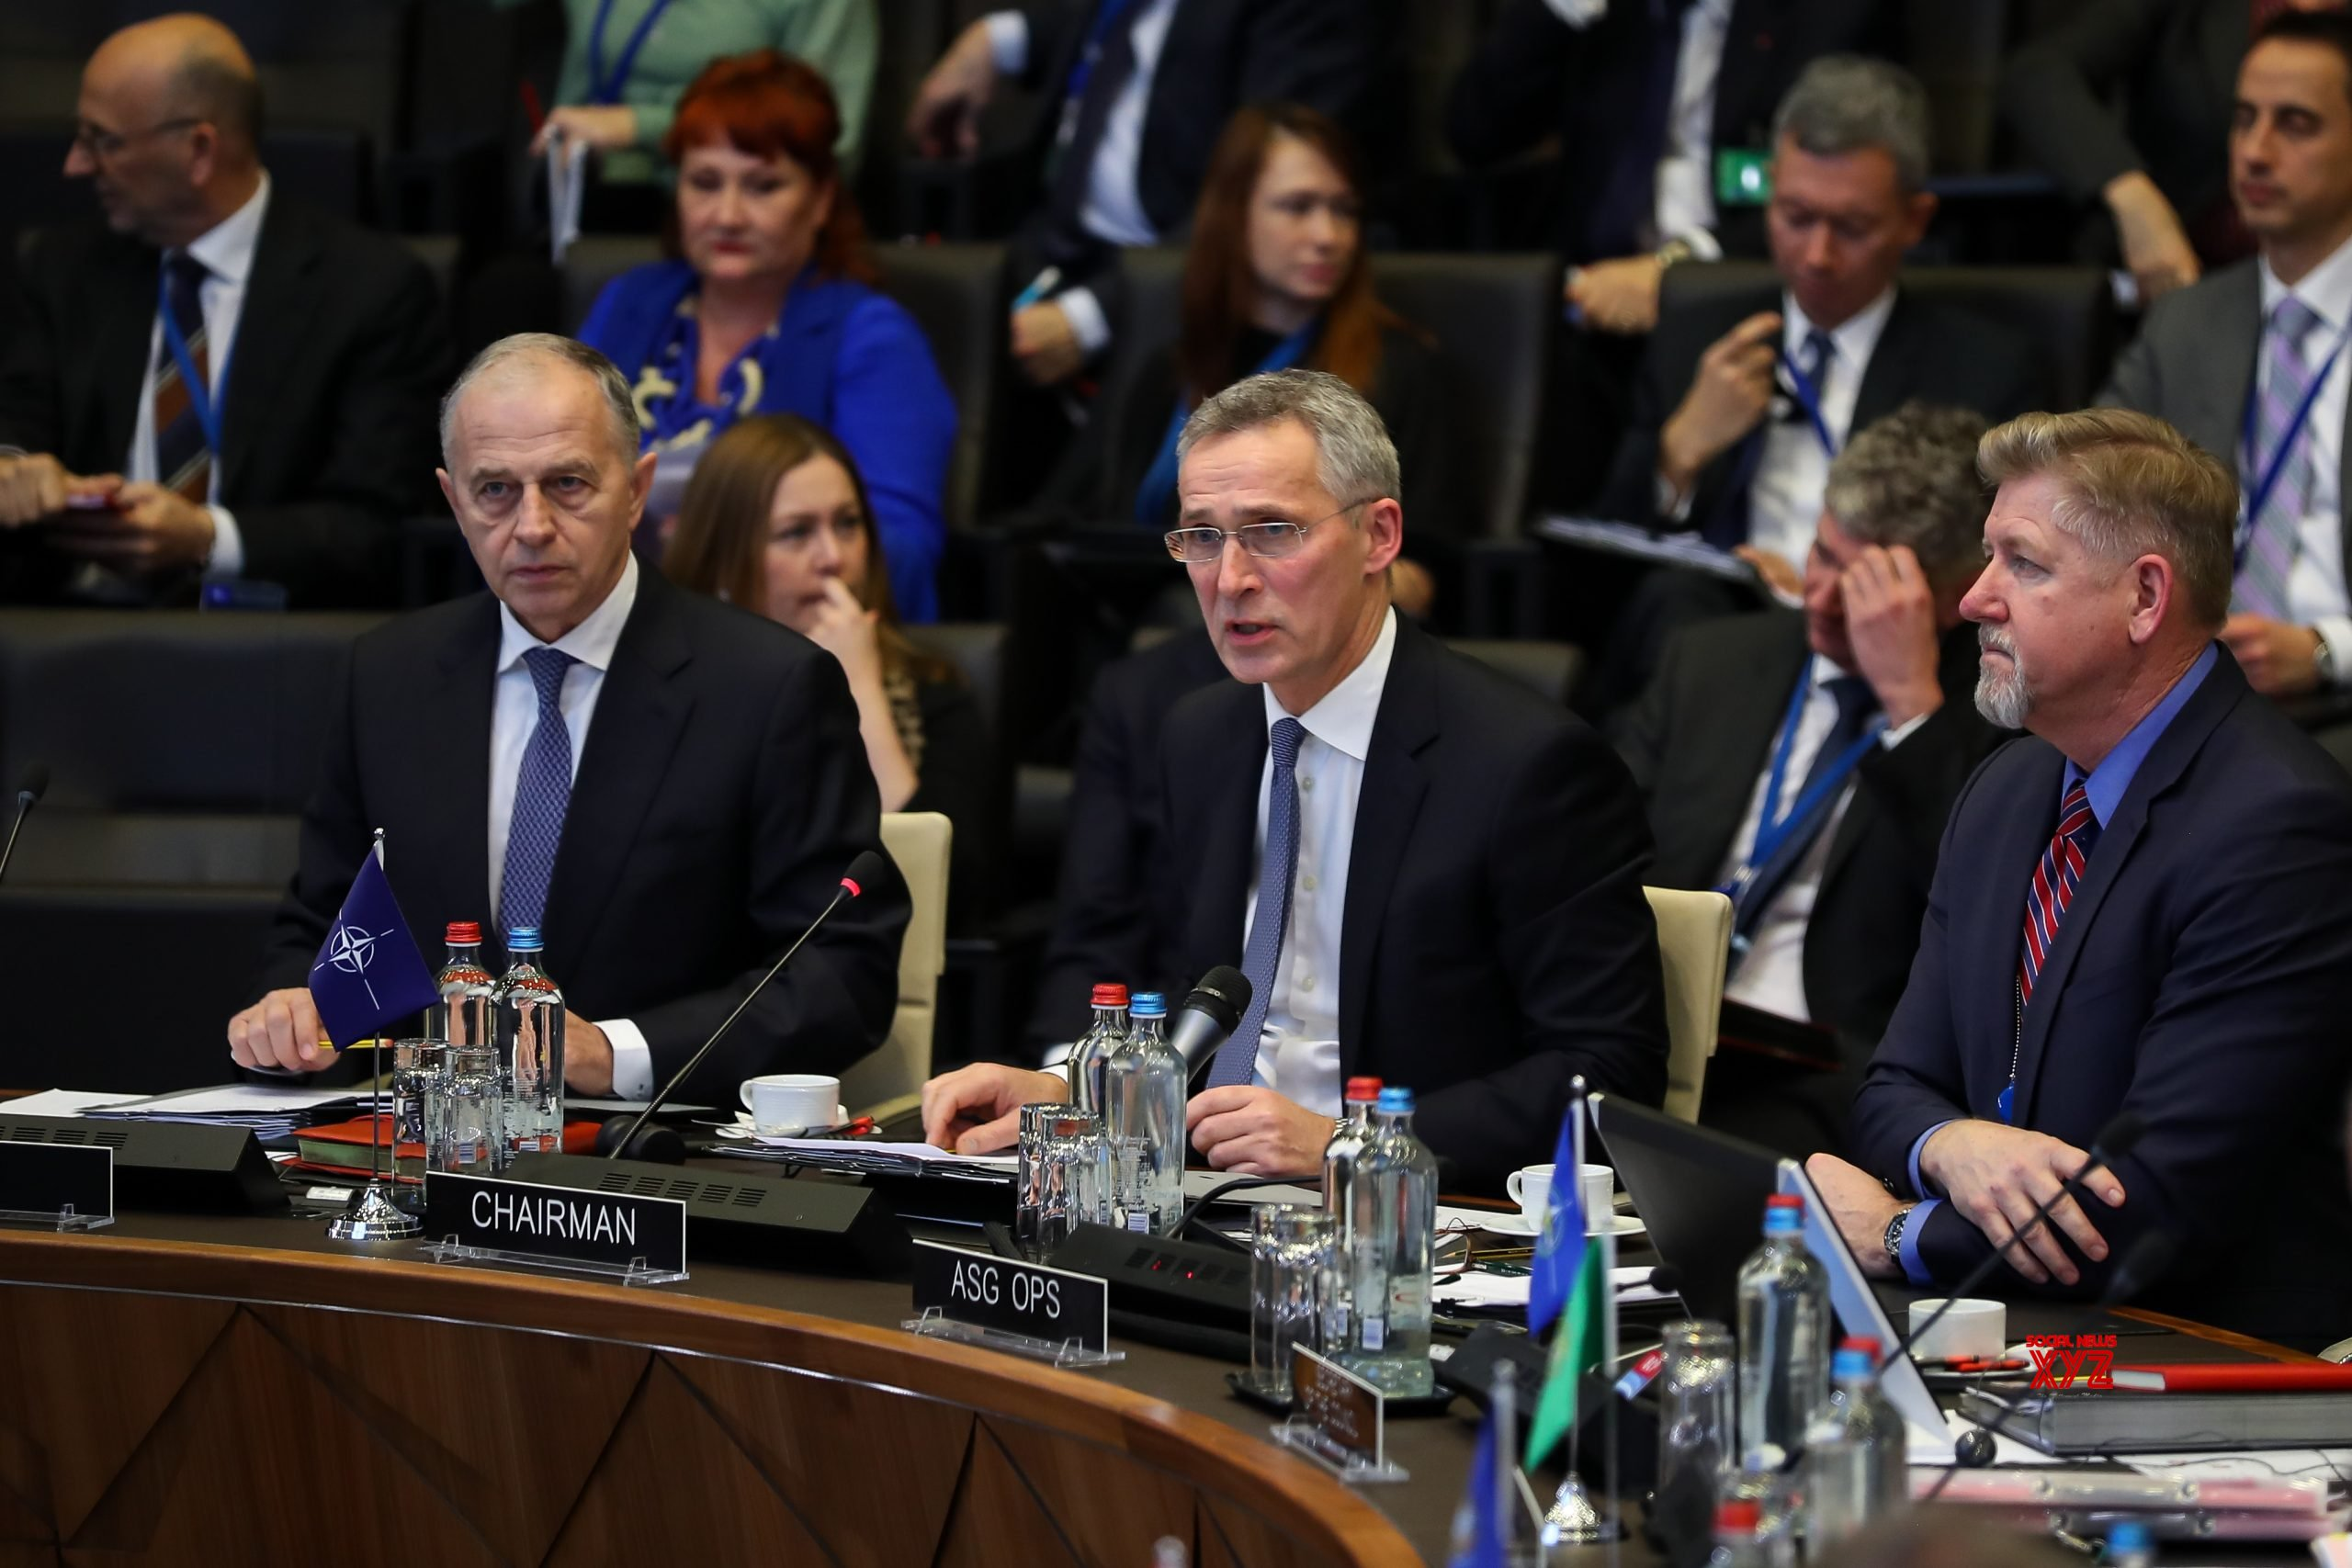 BELGIUM - BRUSSELS - NATO - DEFENSE MINISTERS - MEETING #Gallery